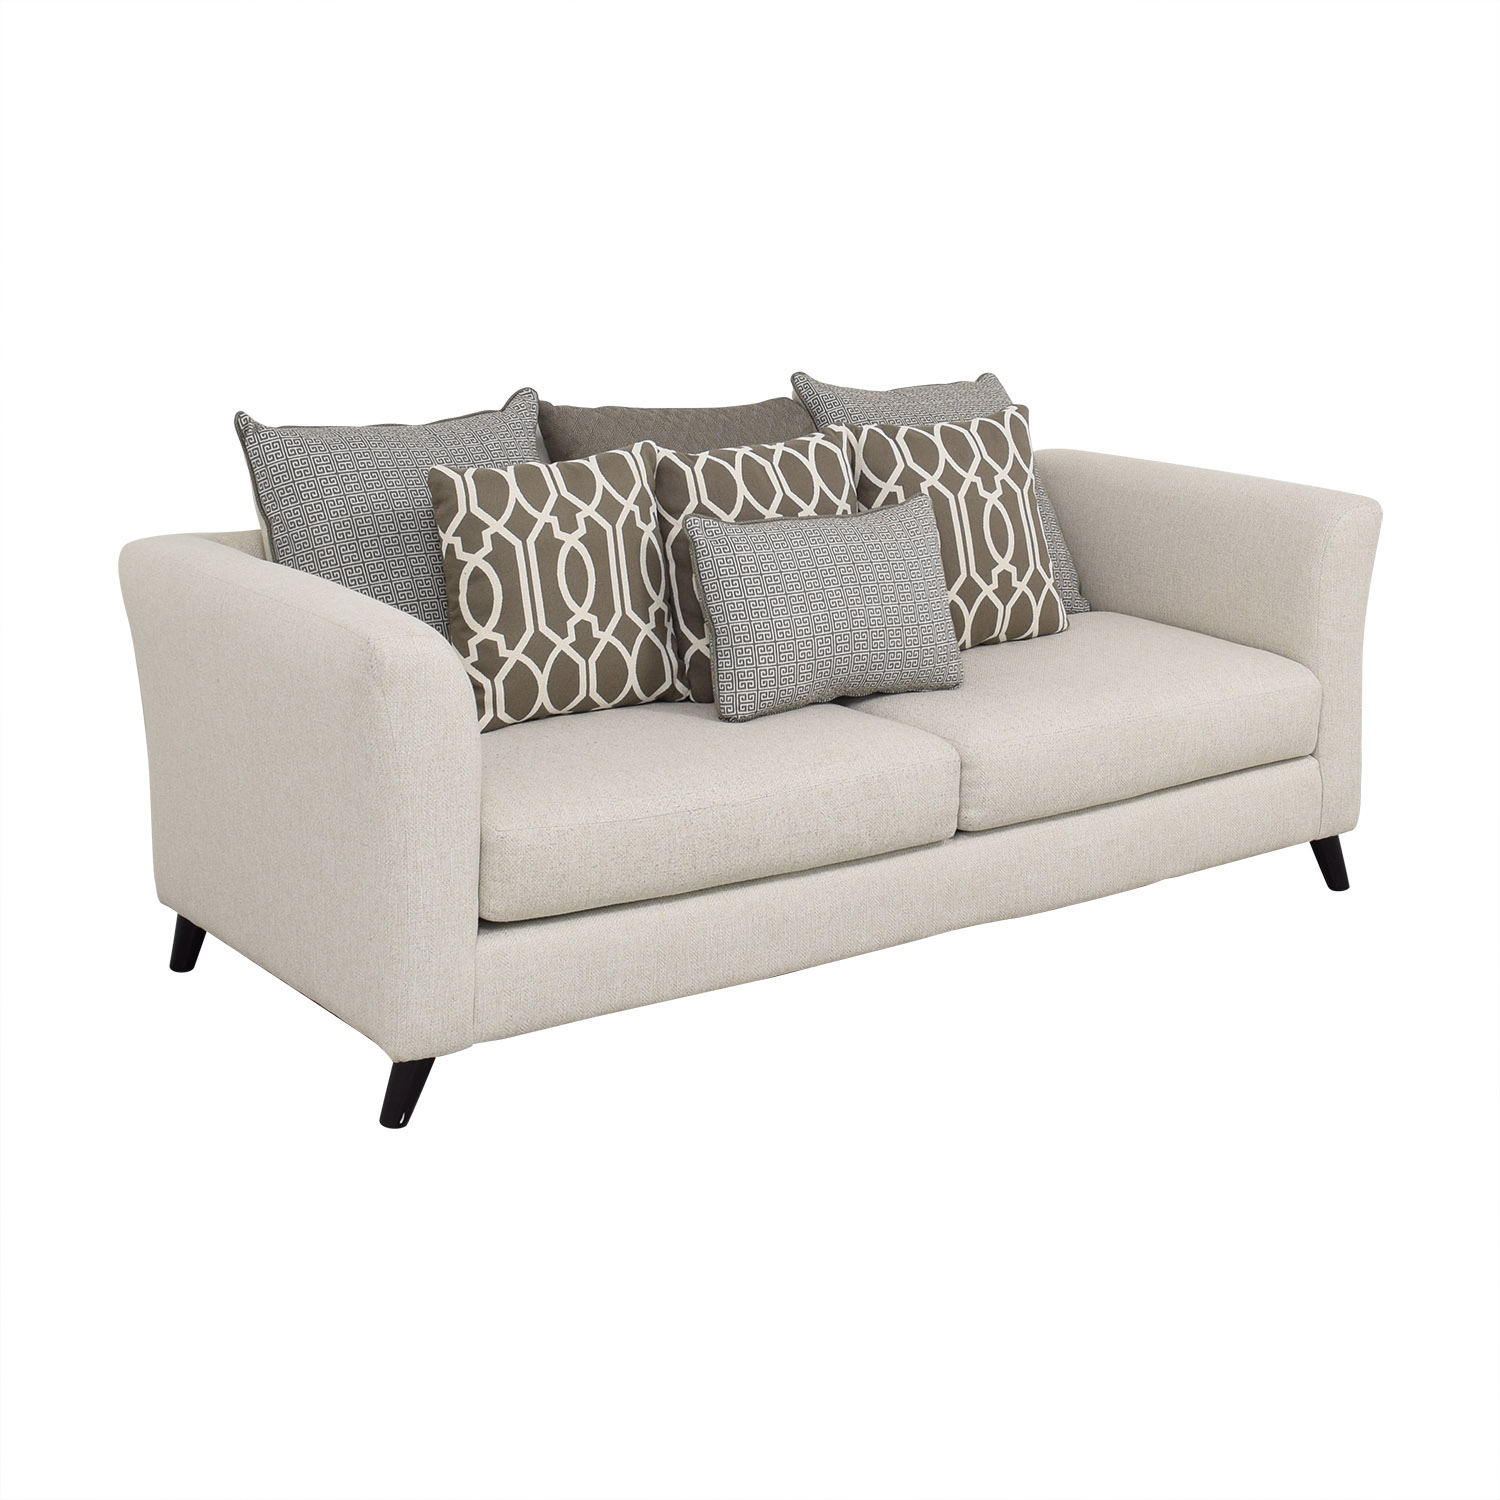 buy Raymour & Flanigan Raymour & Flanigan Sofa with Pillows online